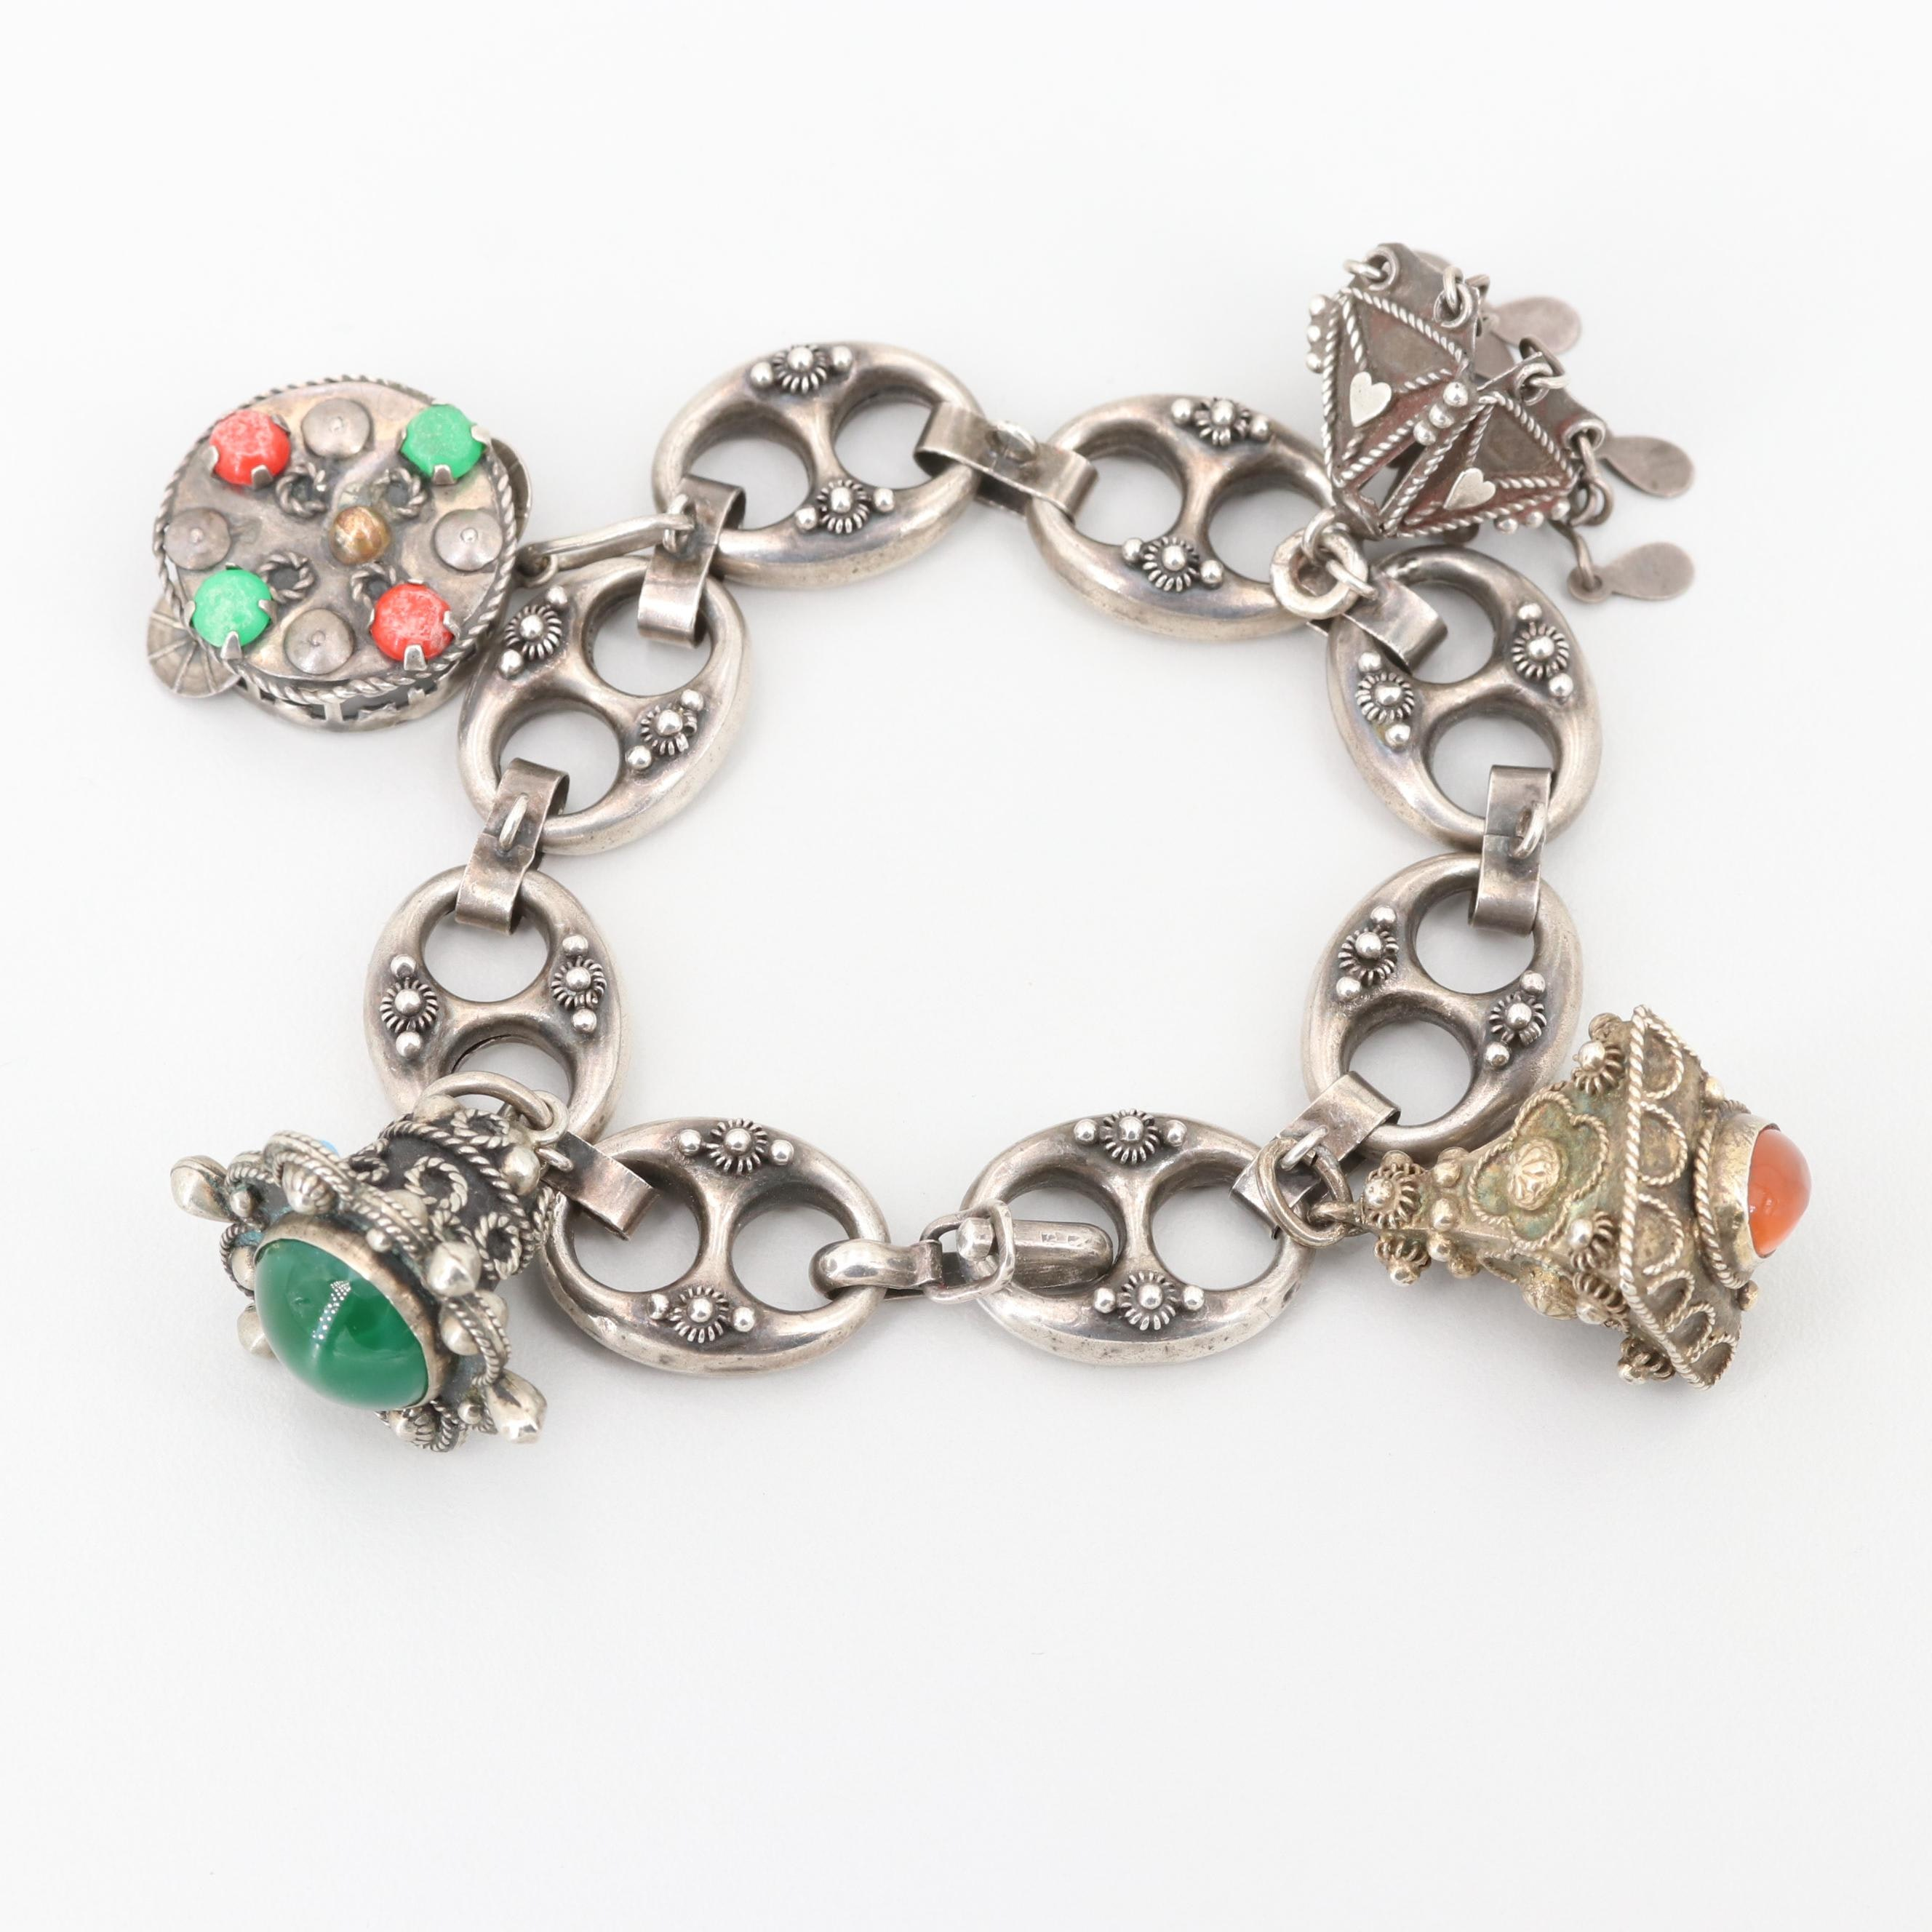 Vintage Sterling, 900 Silver and Imitation Turquoise and Agate Charm Bracelet